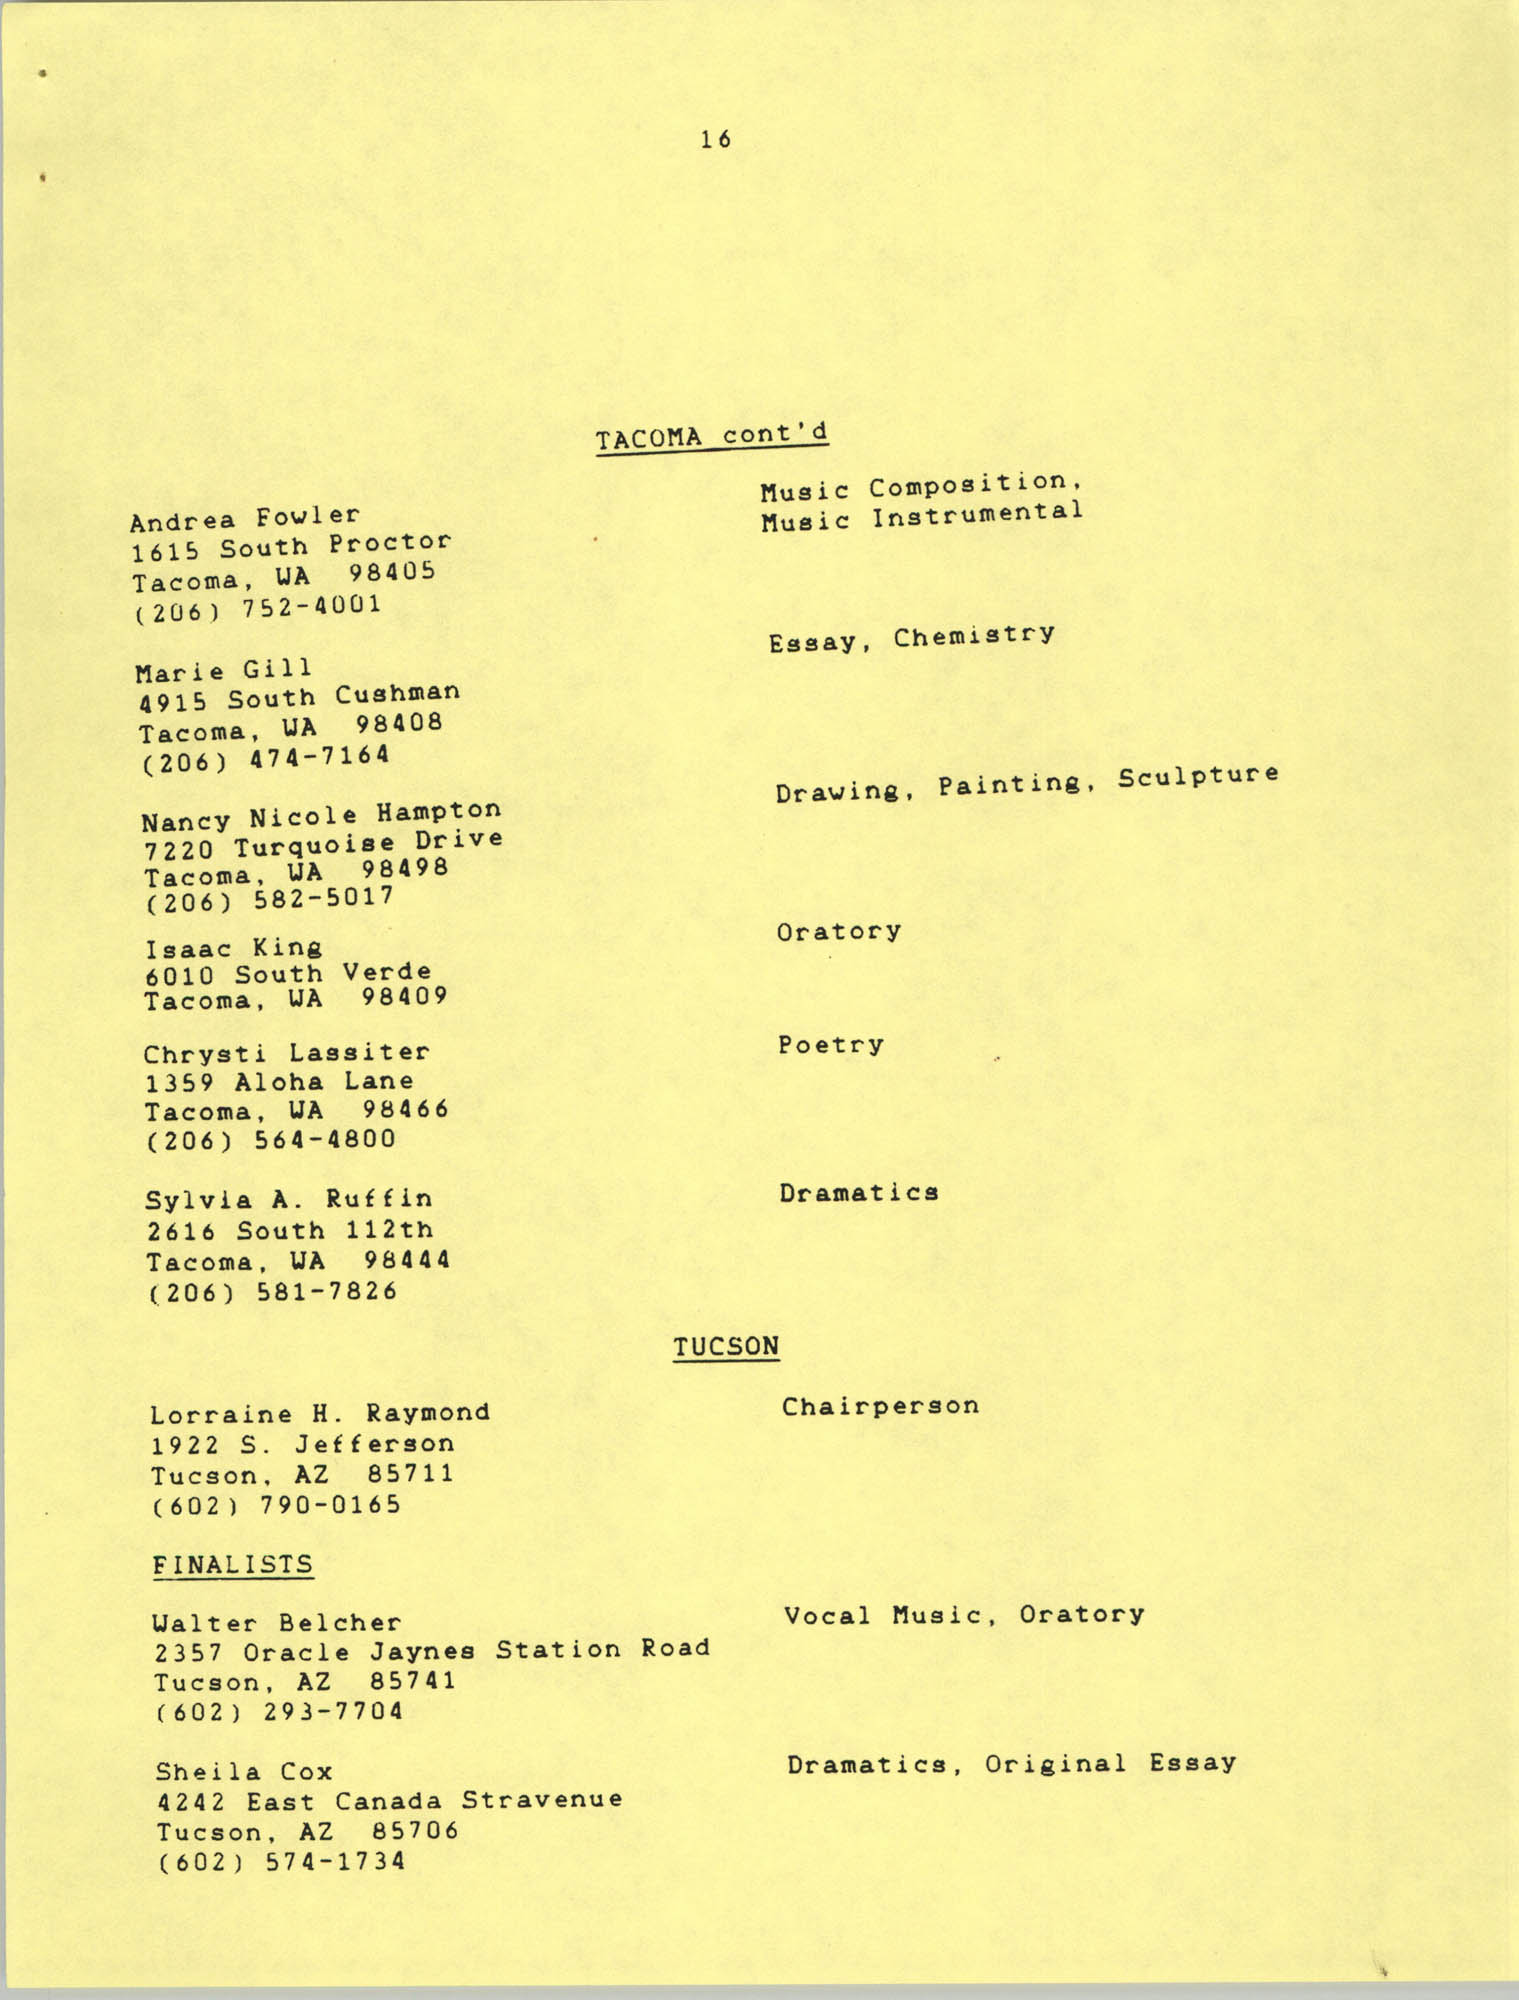 1987 Act-So Contestants, NAACP West Coast Region, Page 16